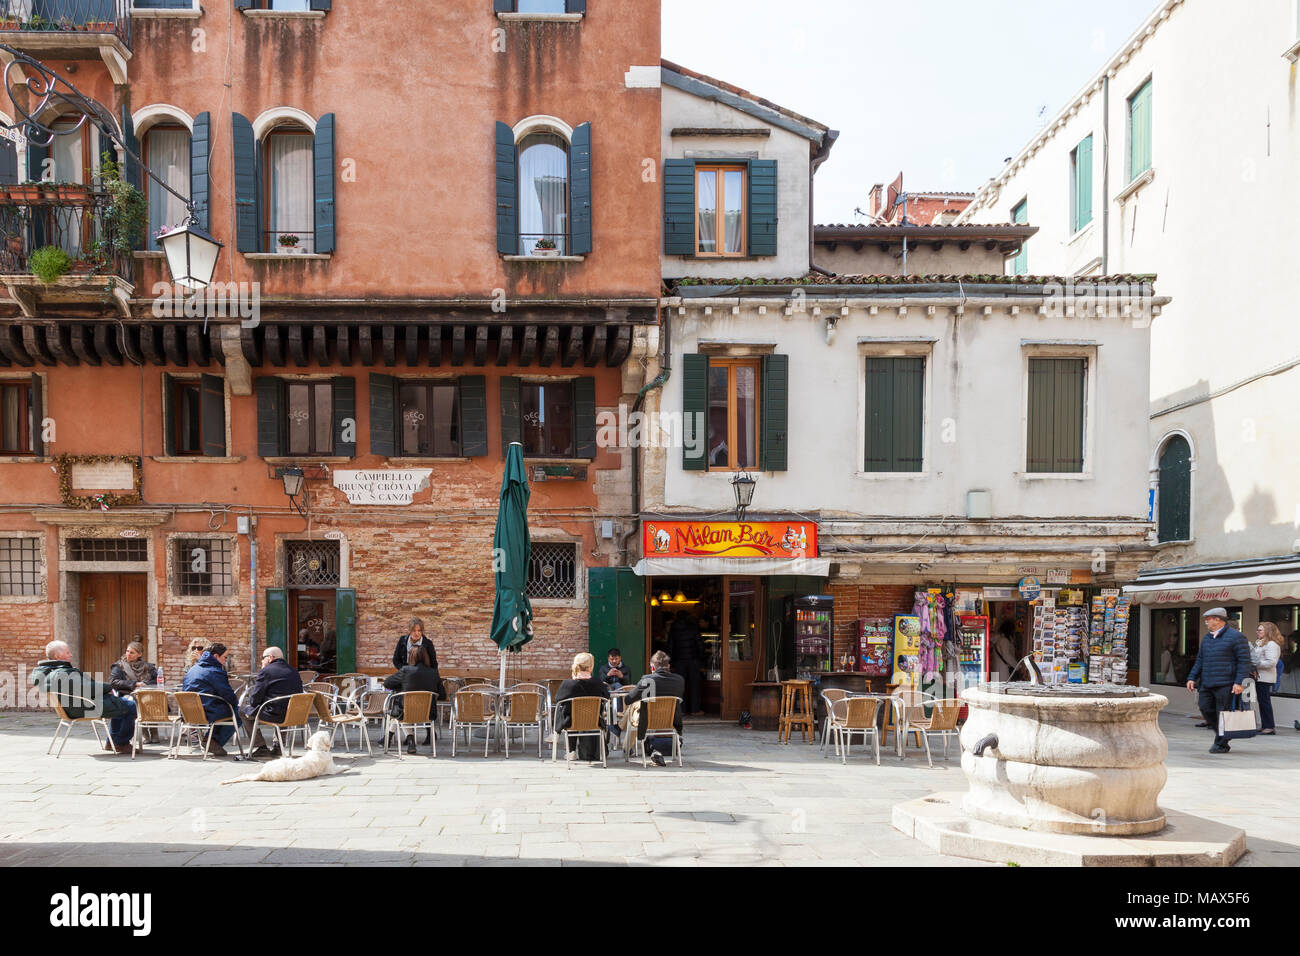 Local Venetians and tourists drinking outside the popular Milan Bar, Cannaregio, Venice, Italy  with a pozzo or ancient well in the foreground - Stock Image